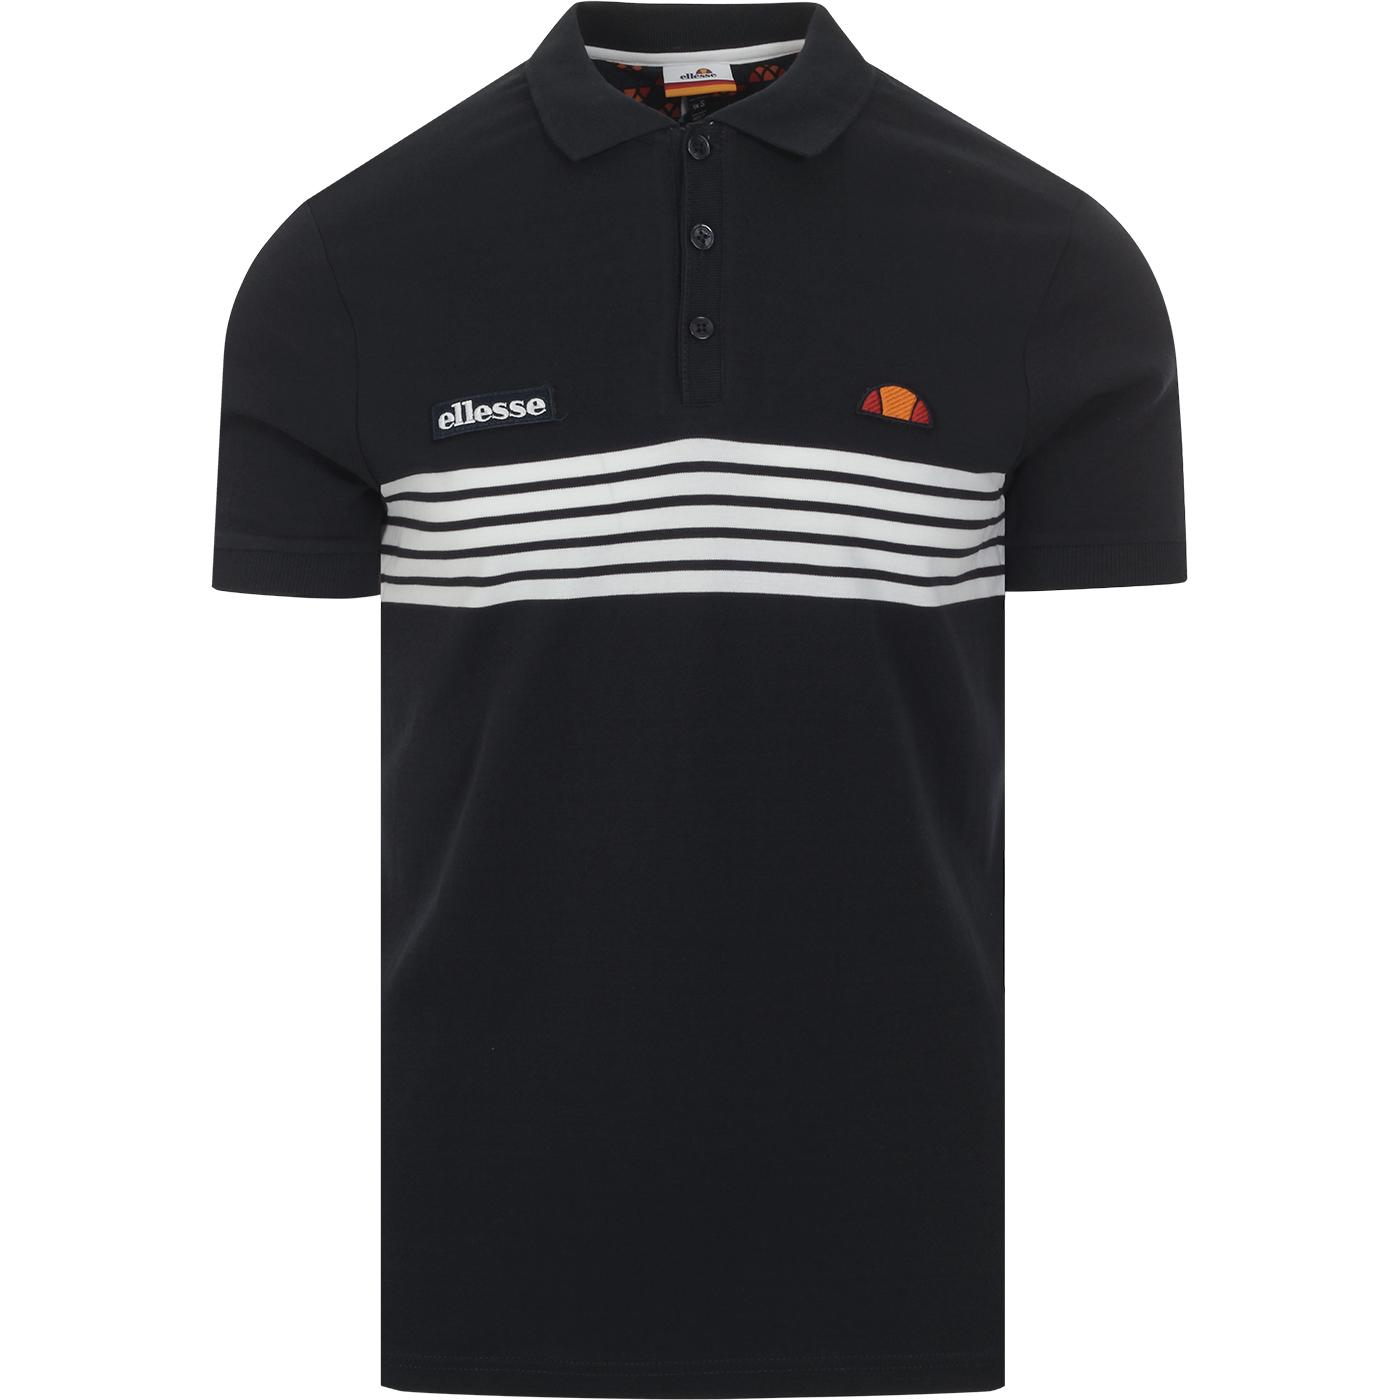 Vanni ELLESSE Retro 80s Stripe Polo Shirt (Navy)